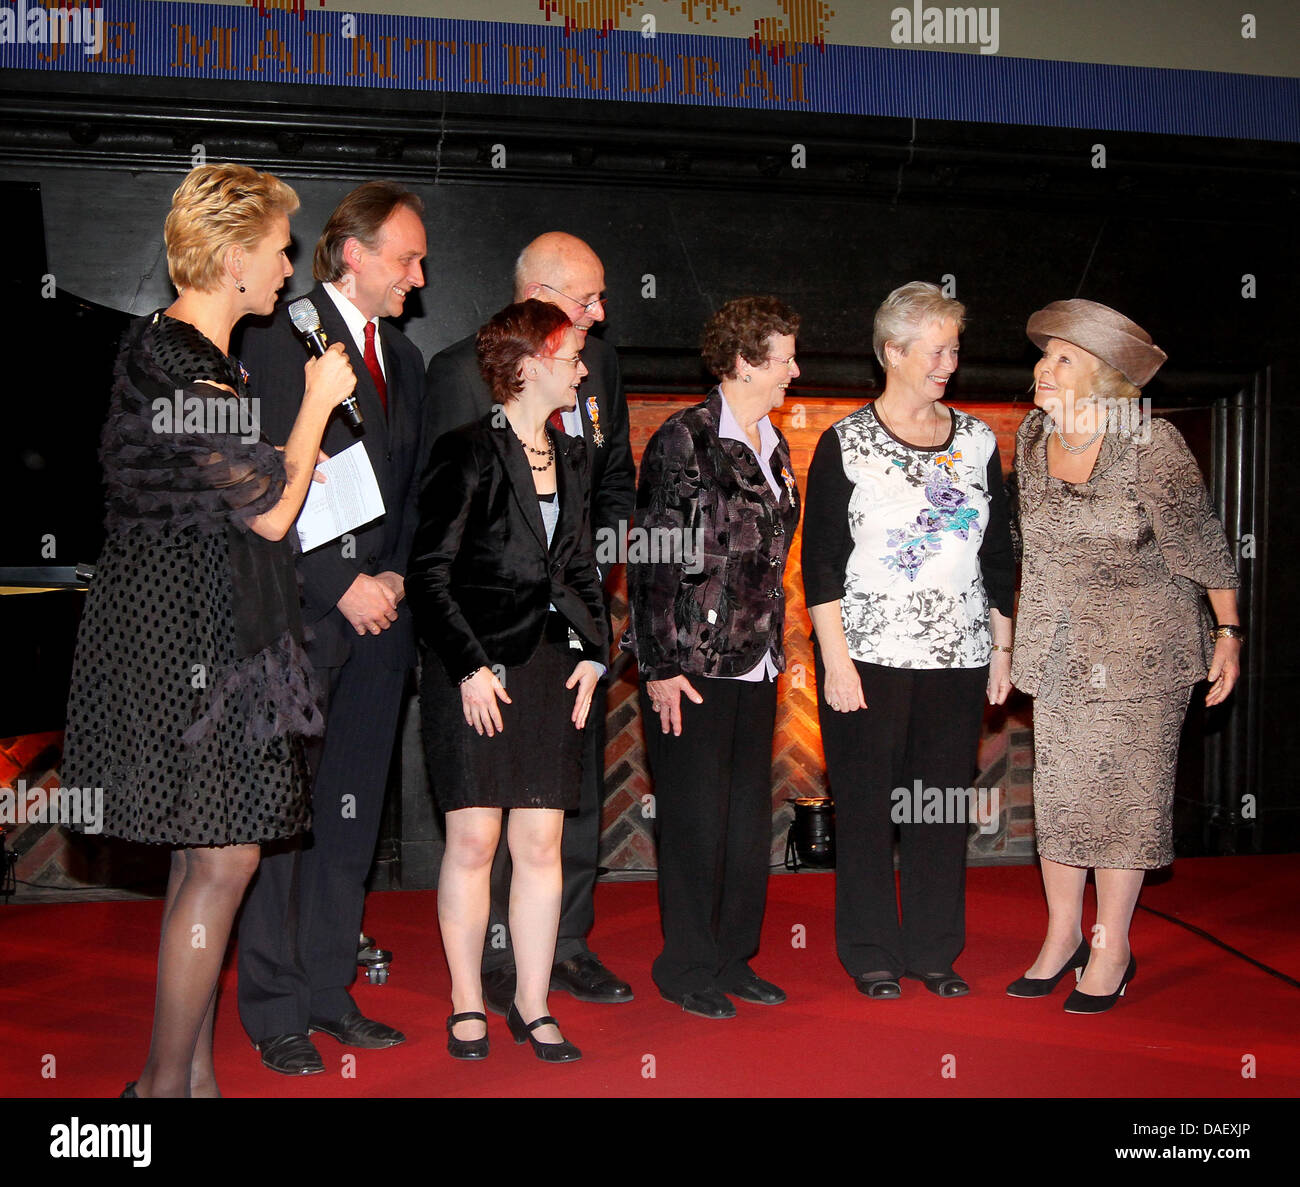 Queen Beatrix of The Netherlands (L) attends the jubilee celebration of the Rheuma Foundation in the Hall of Knights - Stock Image